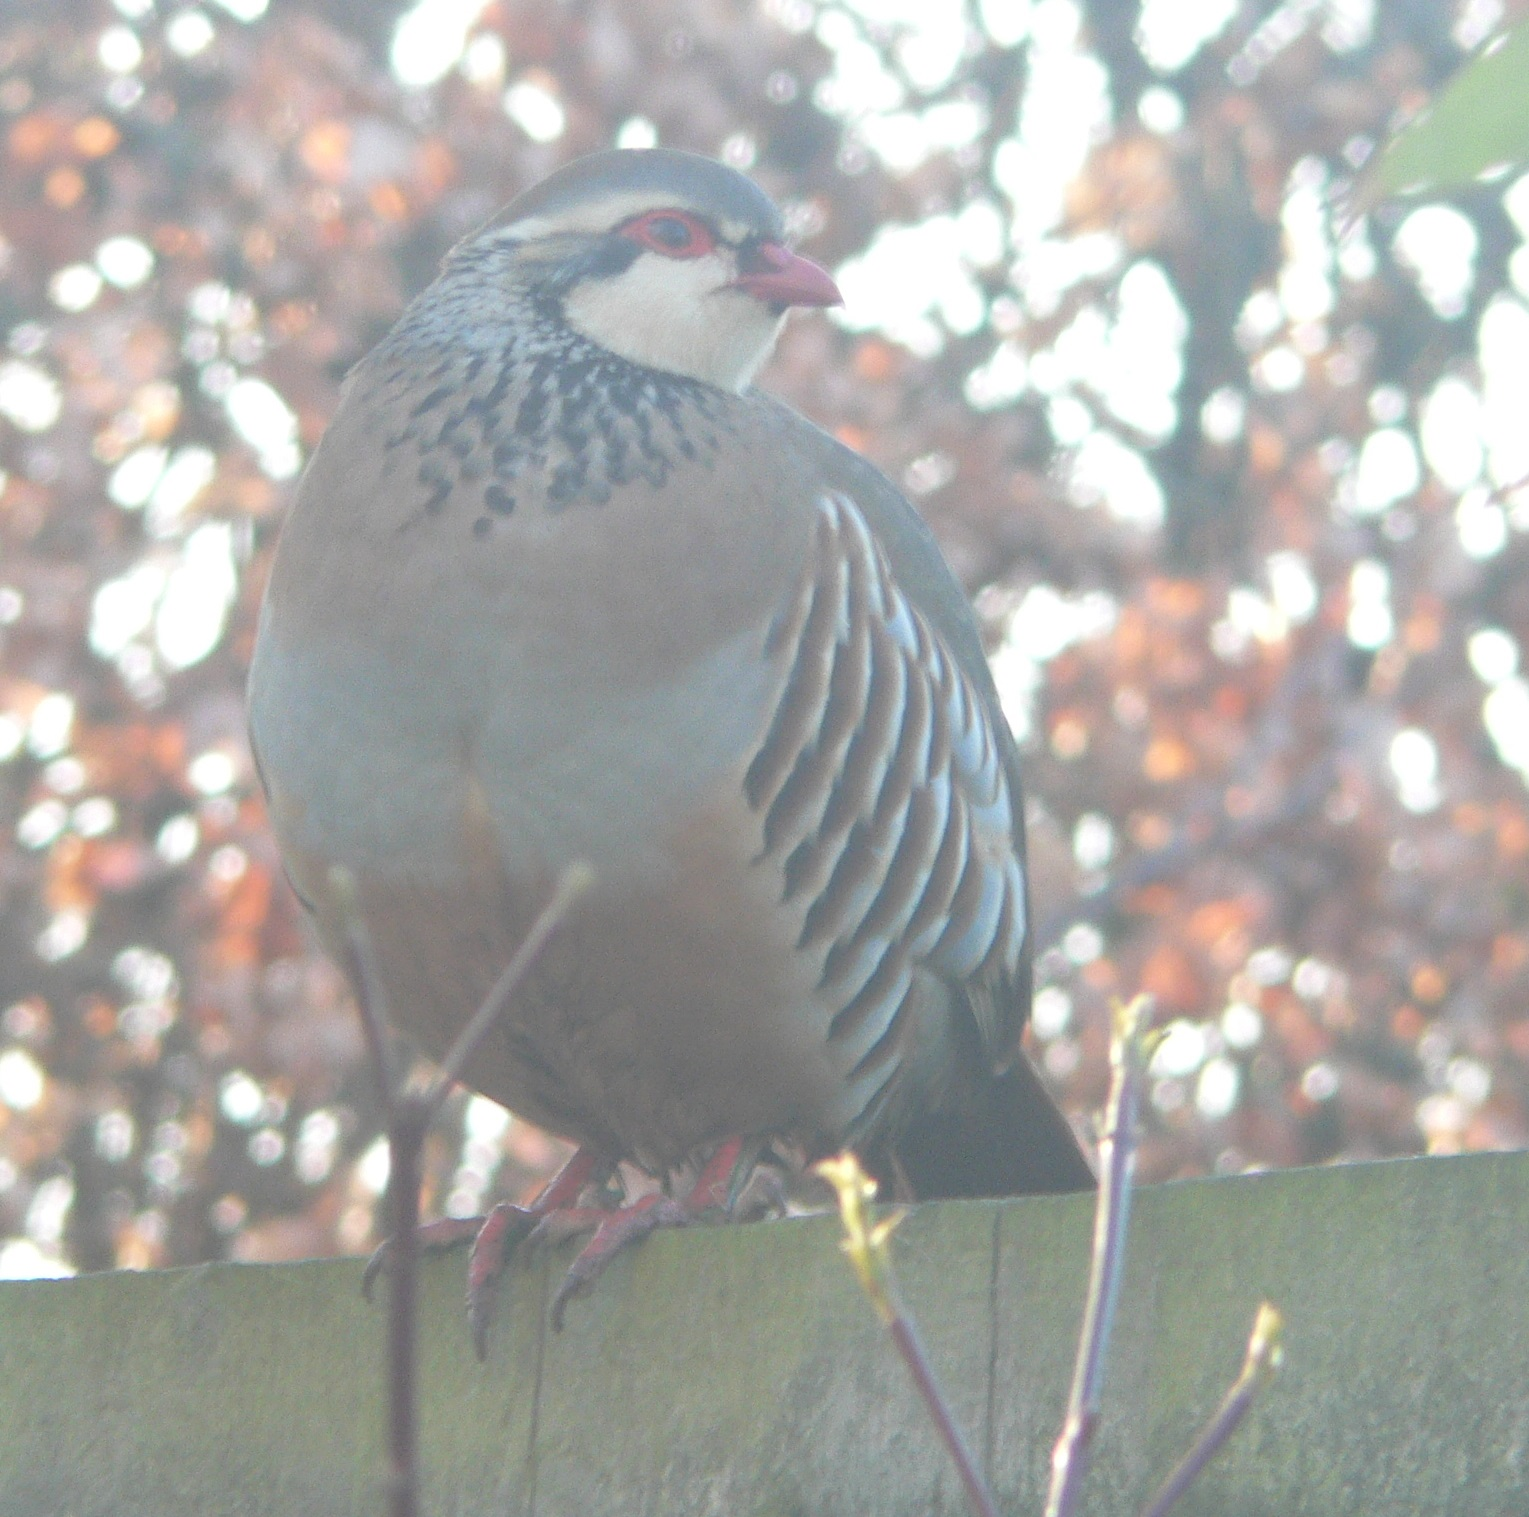 #435 Red-legged Partridge (Alectoris rufa)